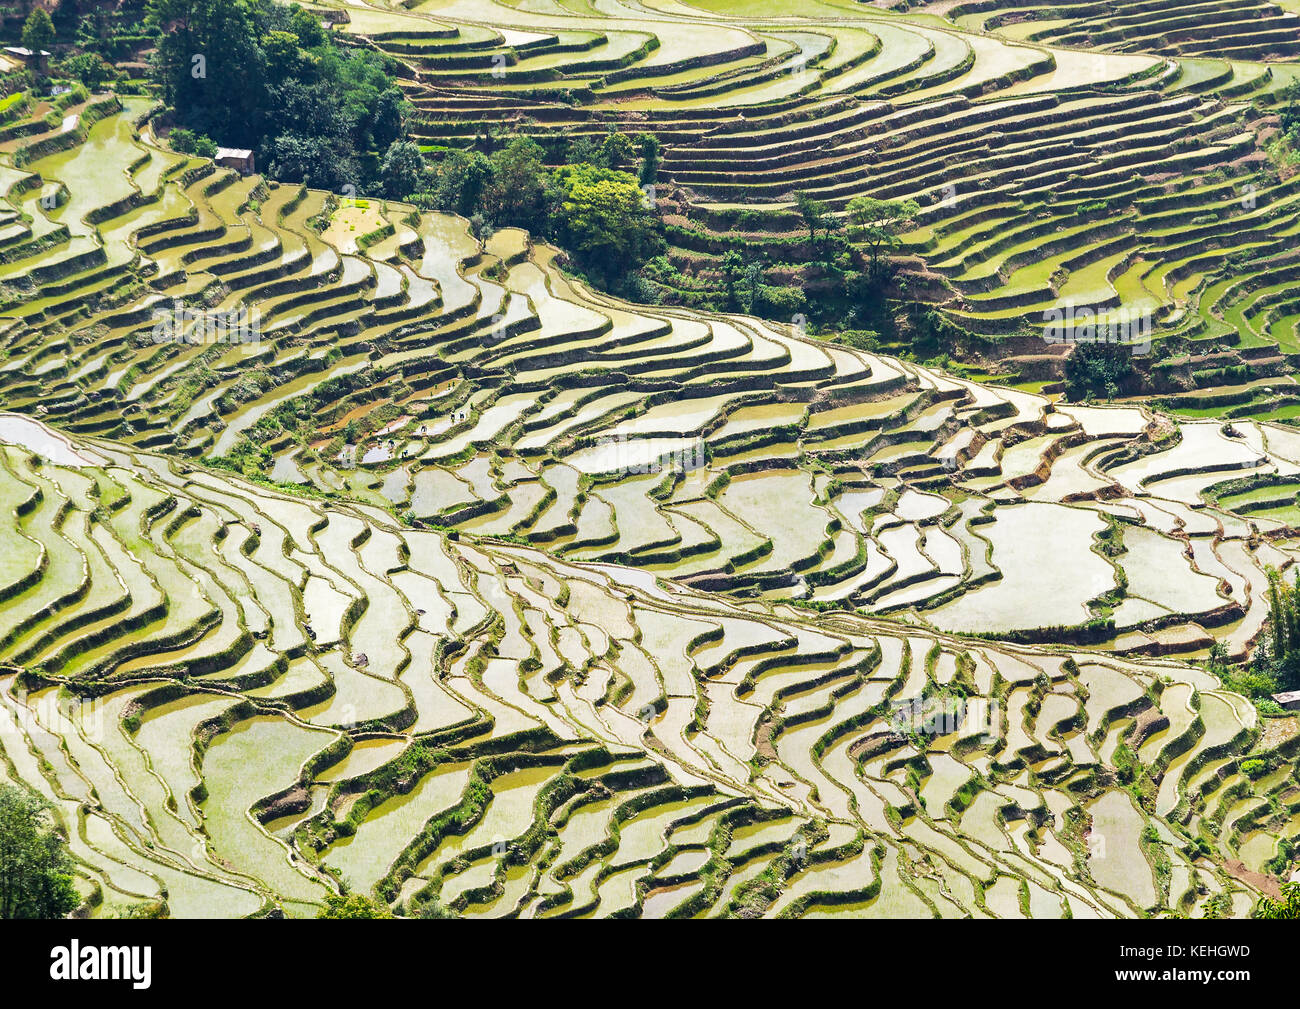 Yuanyang Rice Terraces, Yunnan - China - Stock Image